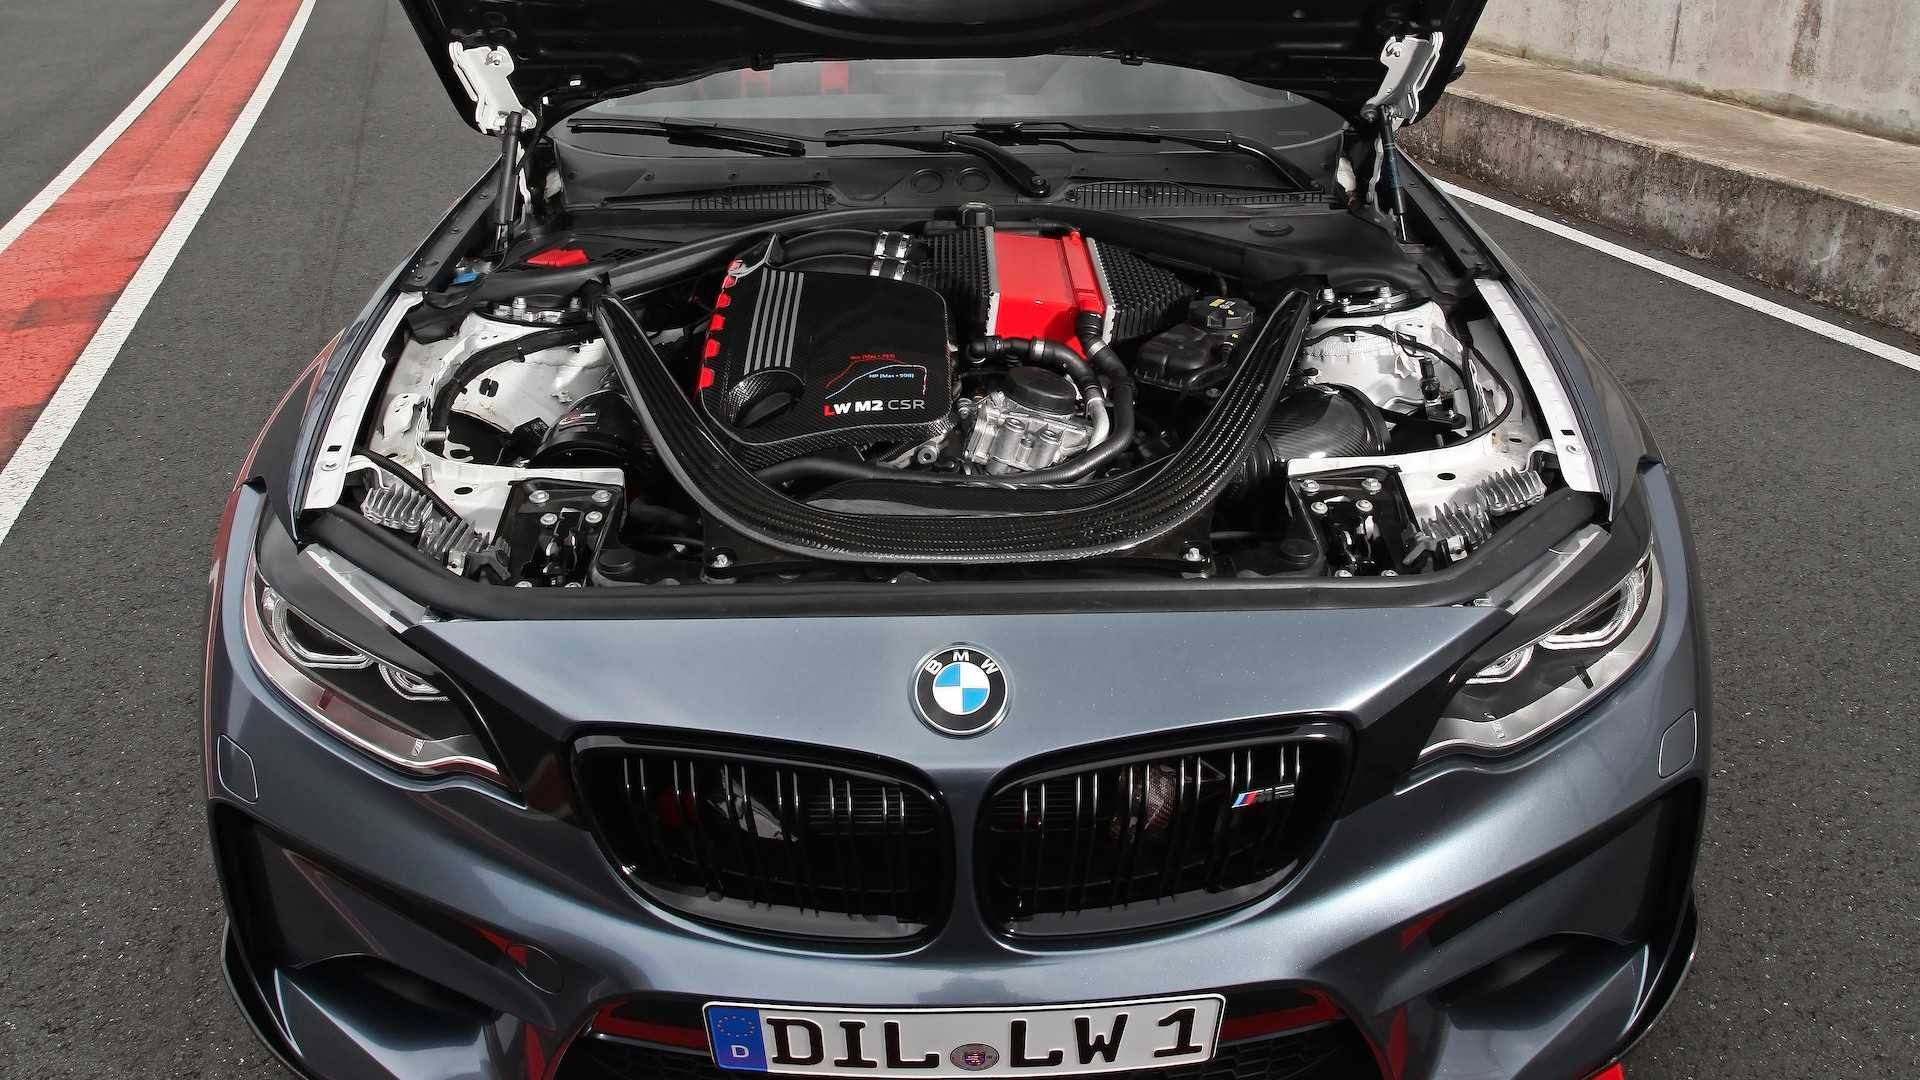 BMW_M2_CSR_by_Lightweight_Performance_20